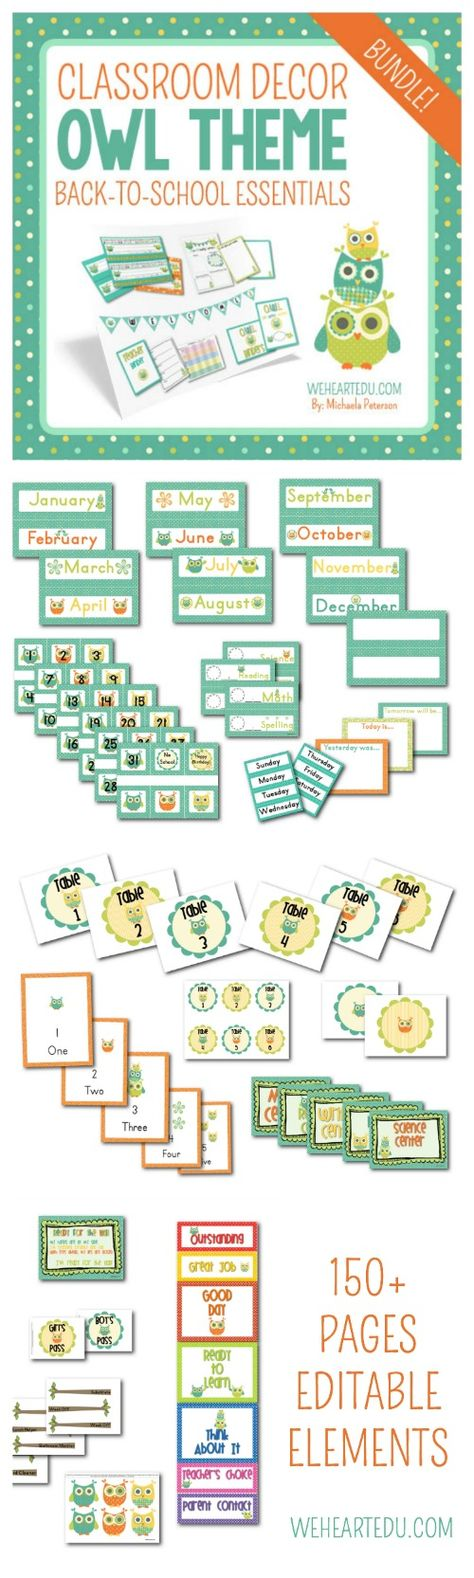 Owl Theme Classroom Mega Pack!  Full of Back-to-School Essentials like Owl Nametags, Behavior Chart, Job Chart, Calendar Pack and much more!  Includes editable elements.